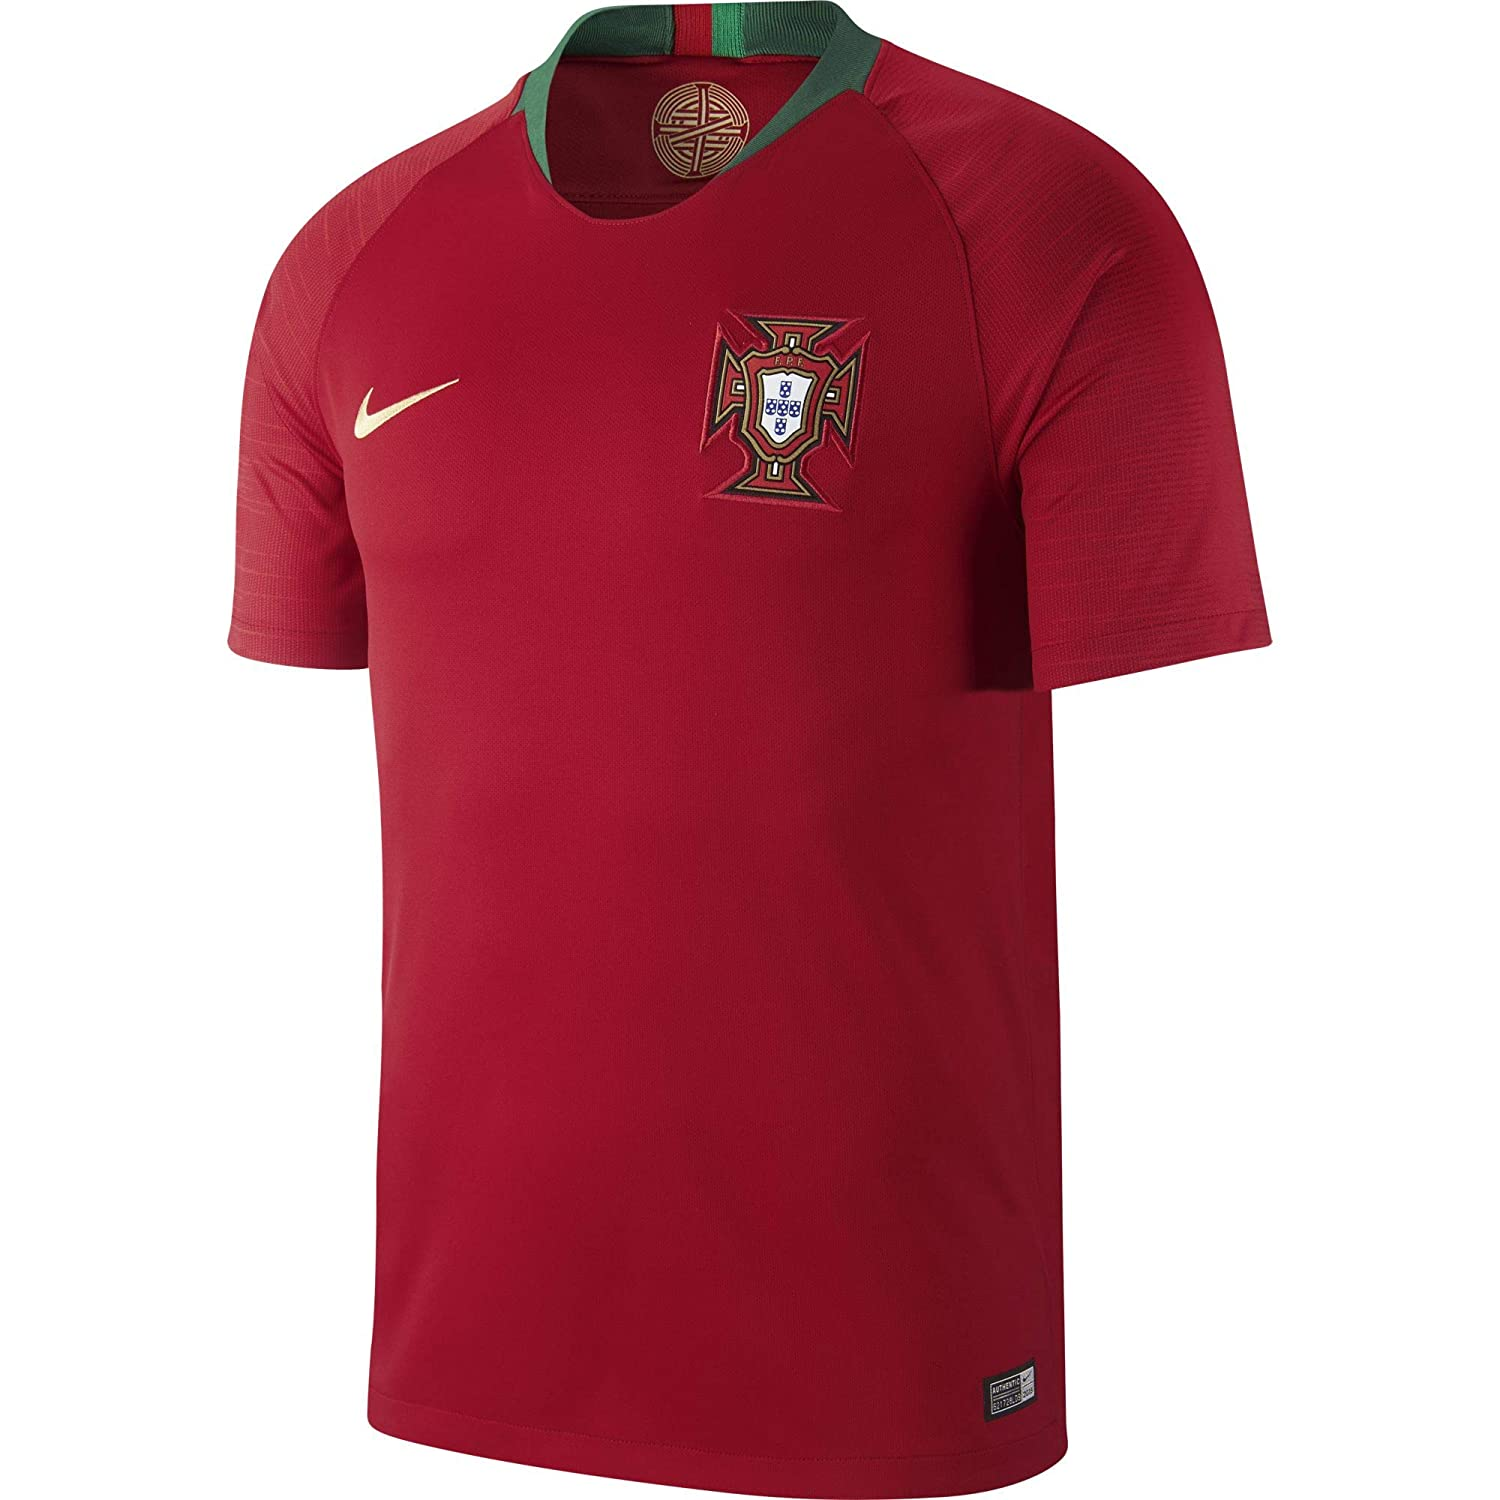 Amazon.com  NIKE Men s Soccer 2018 Portugal Stadium Home Jersey  Shoes eb9d042d8